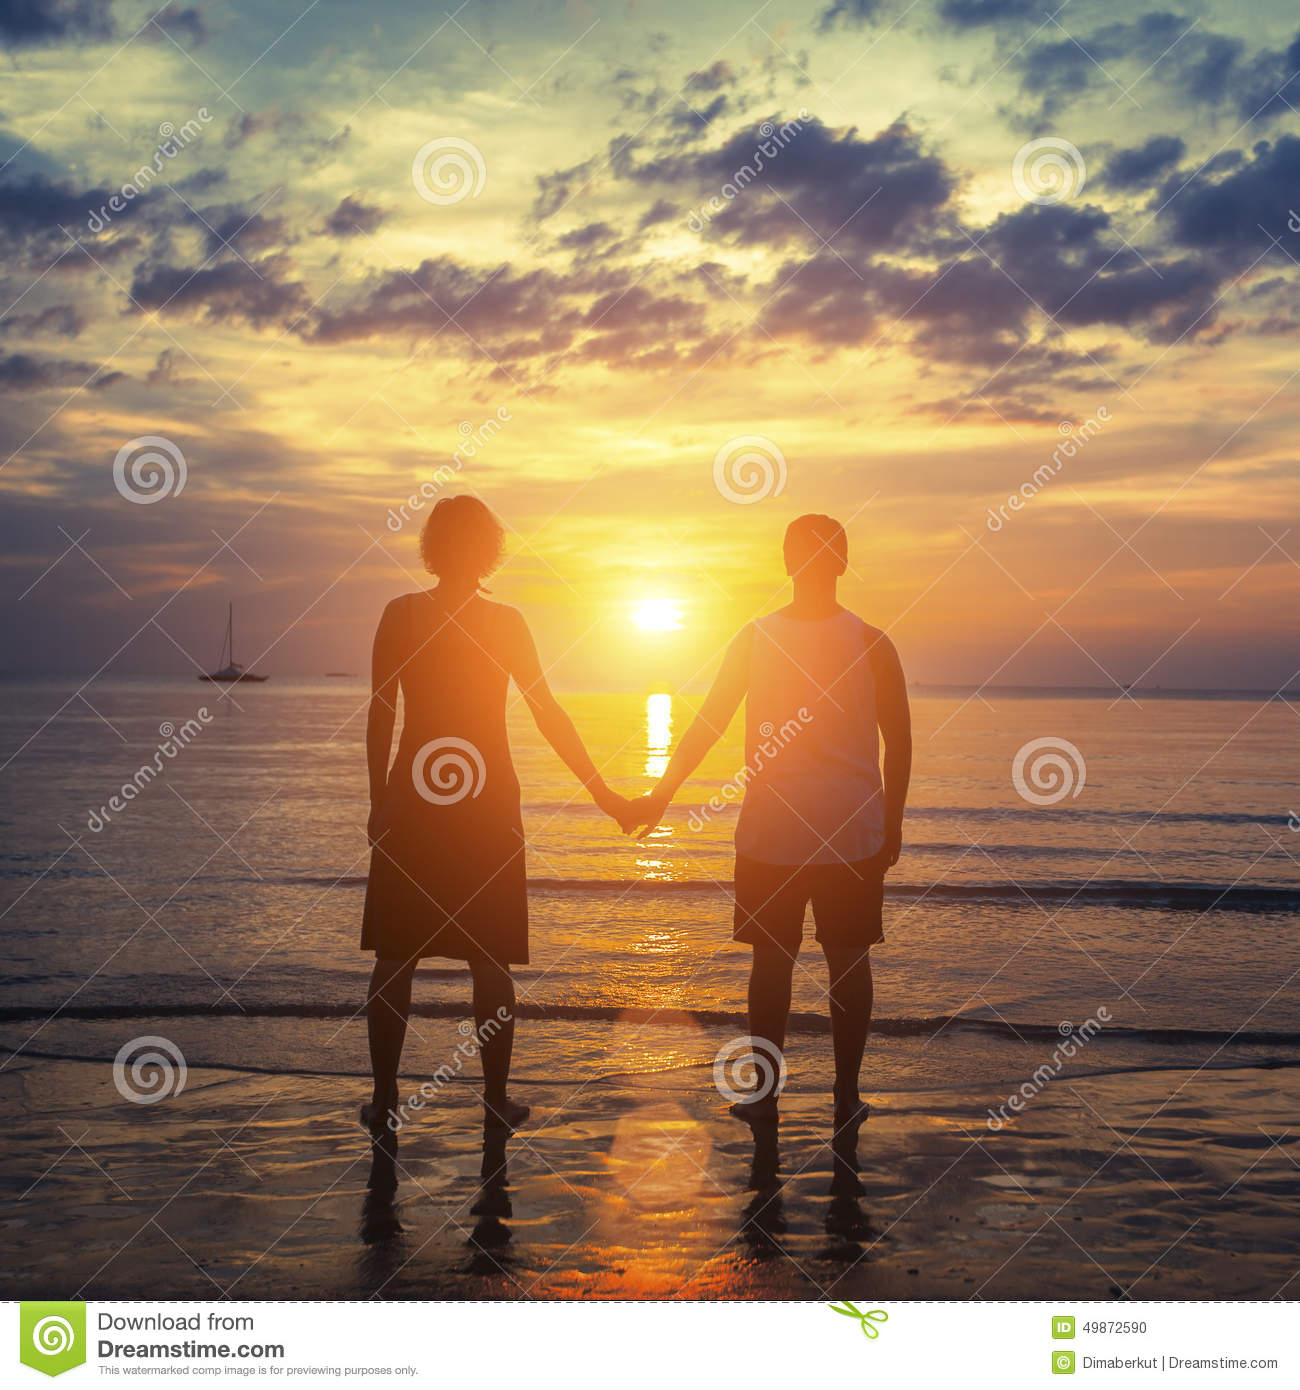 Silhouette Of A Couple On Their Honeymoon Standing On The